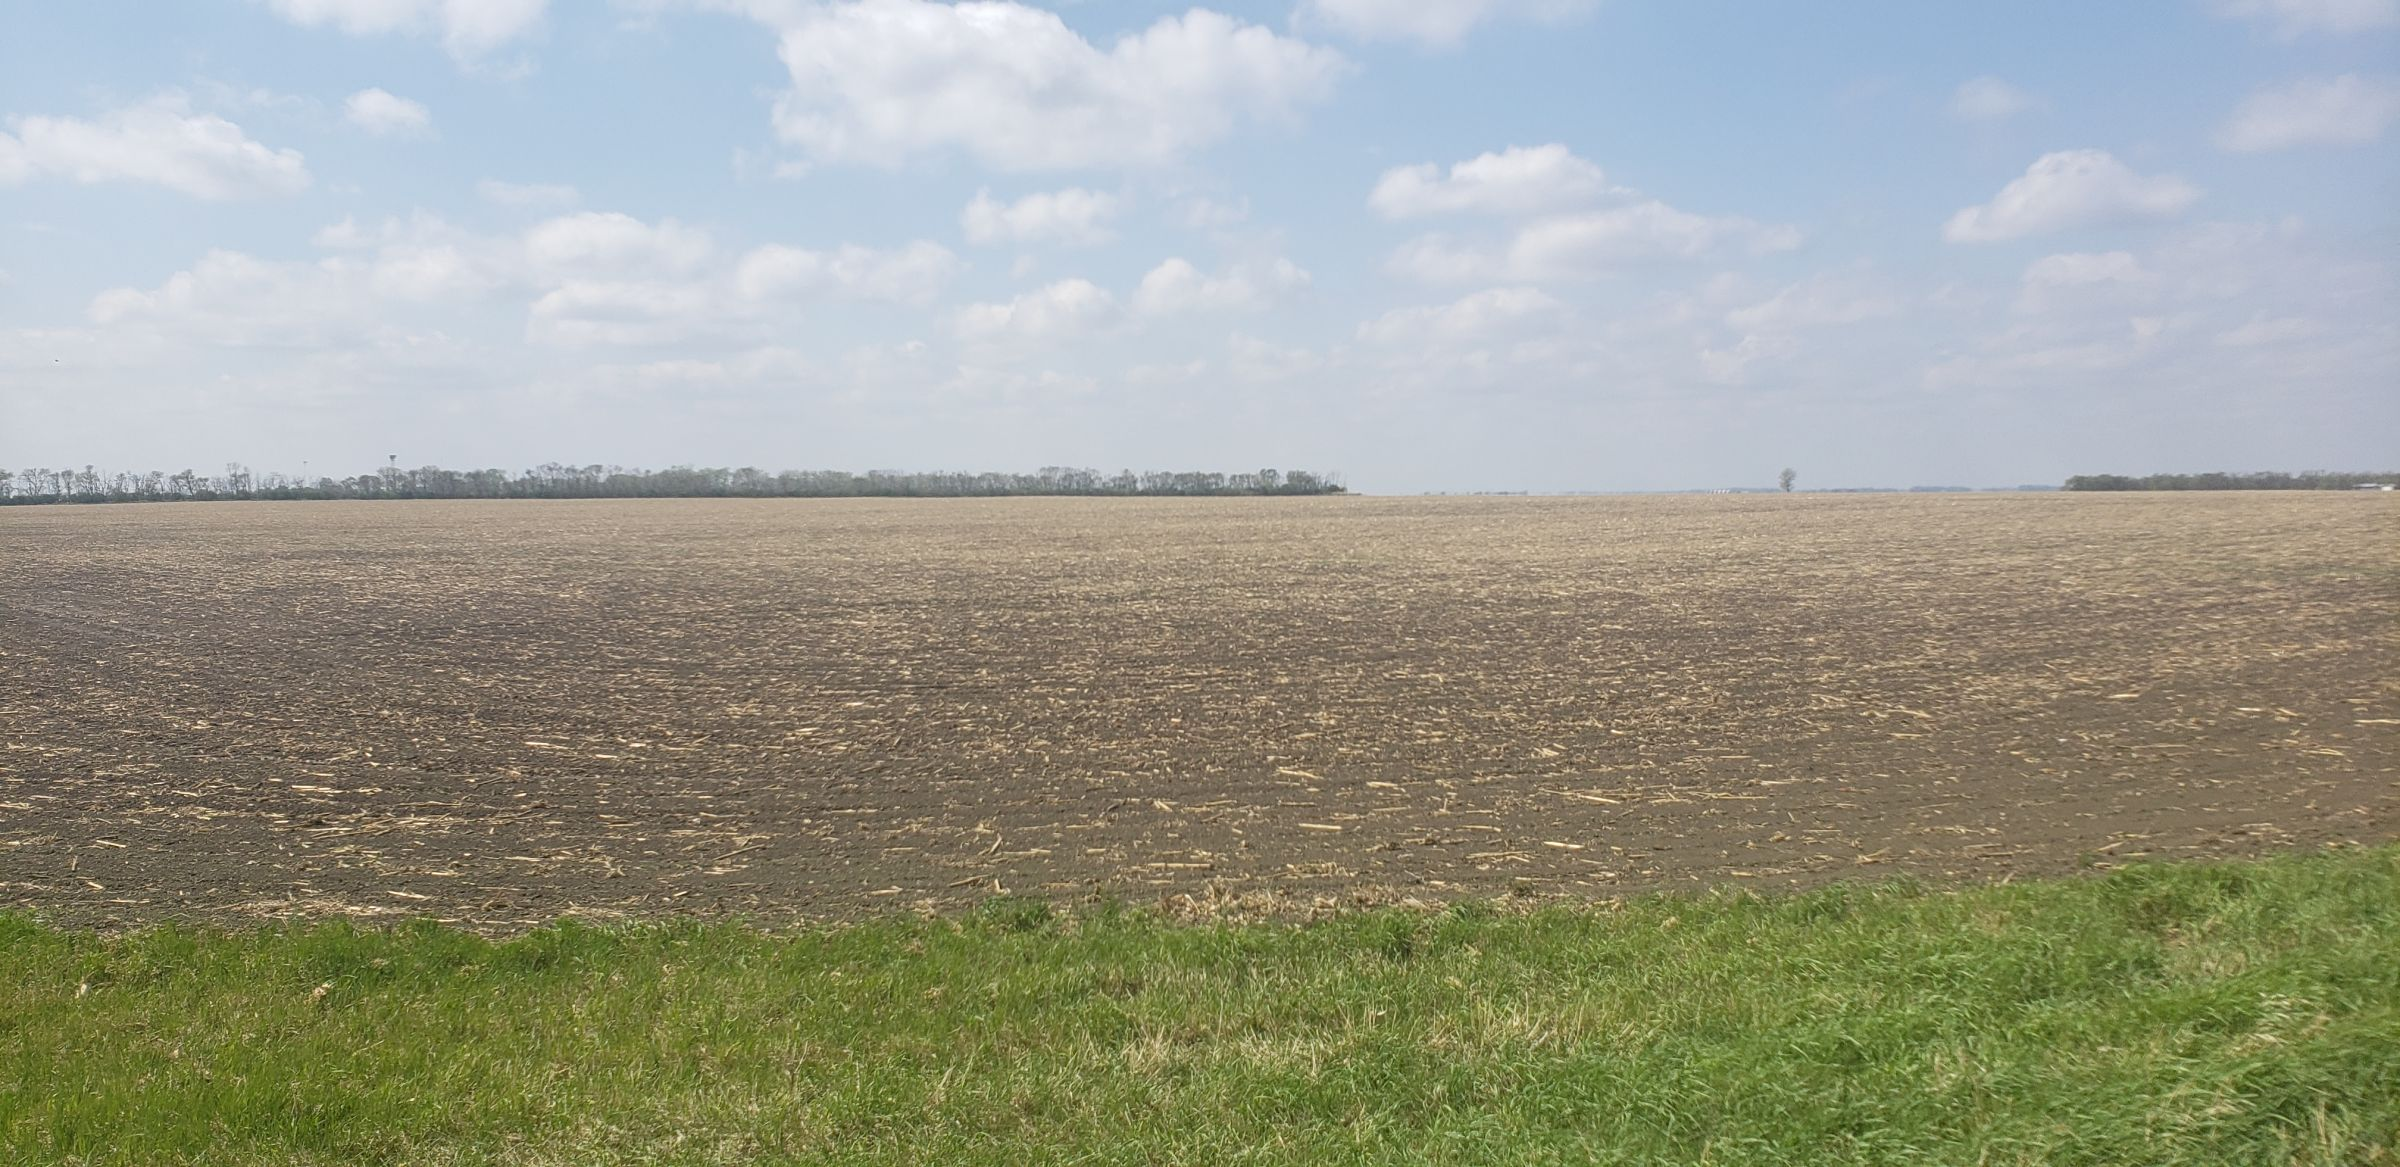 auctions-cass-county-north-dakota-157-acres-listing-number-15592-2-2021-06-16-180842.jpg